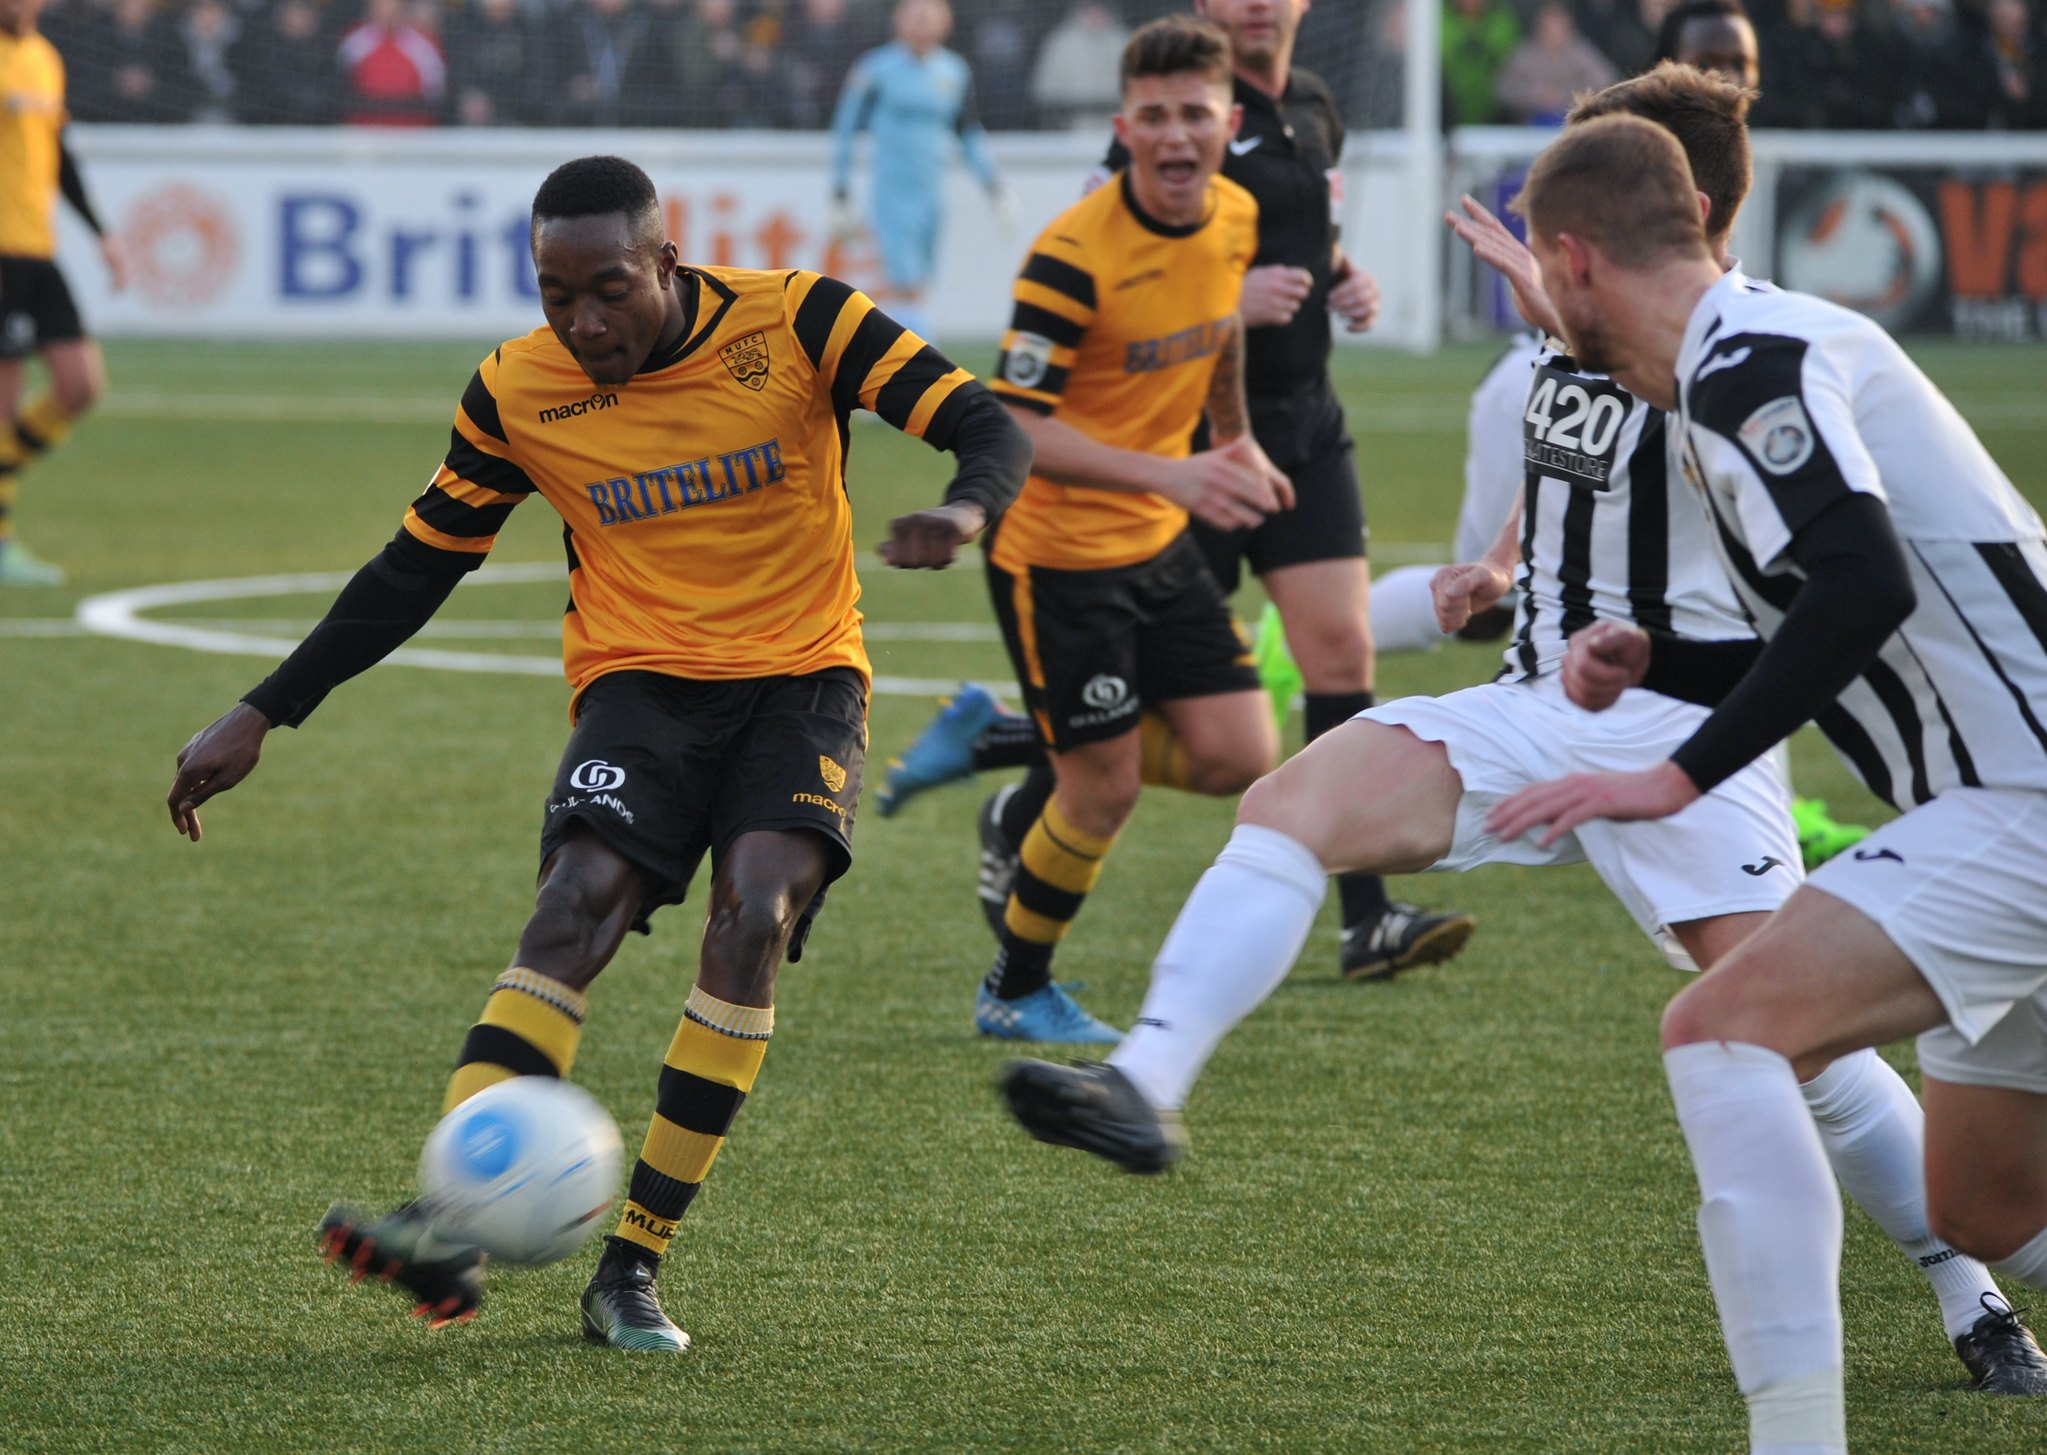 Maidstone United v Torquay United 239